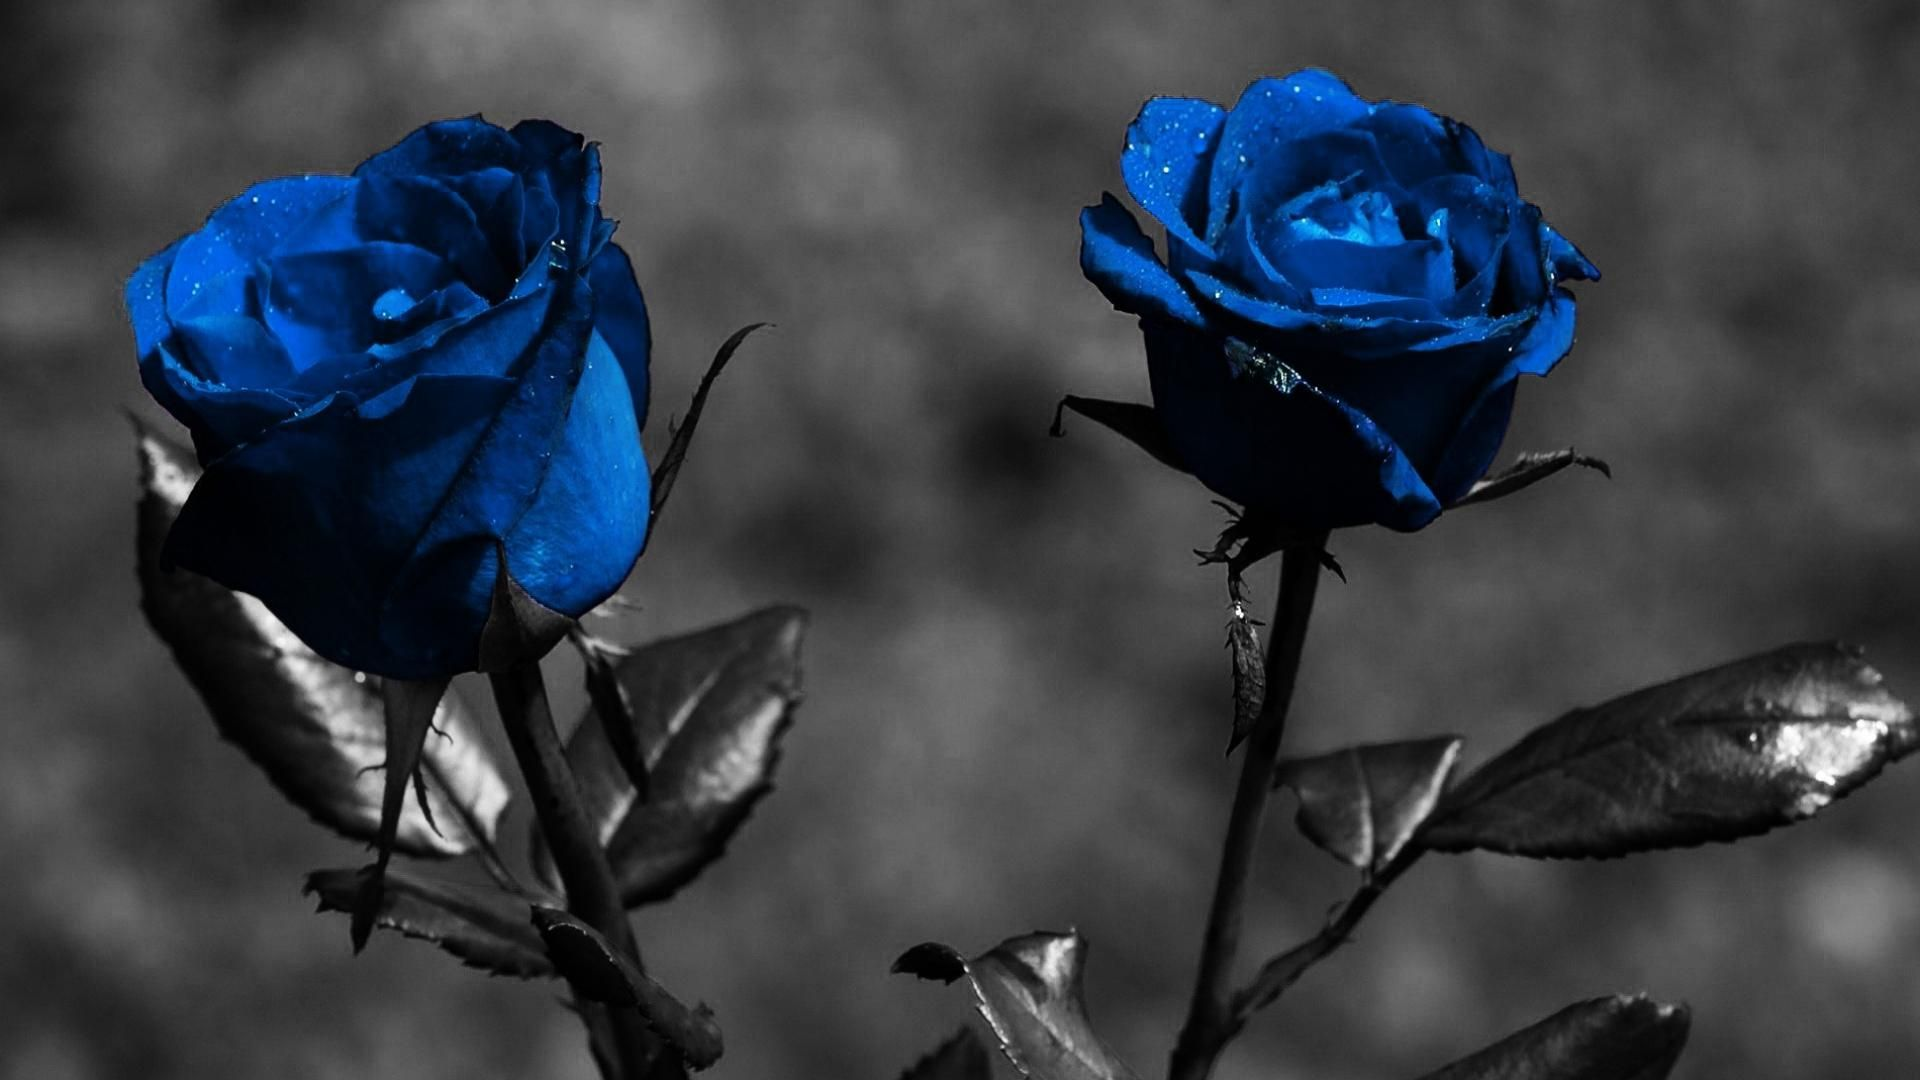 Blue Rose Flower Nature HD Wallpaper of Flower - hdwallpaper2013.com